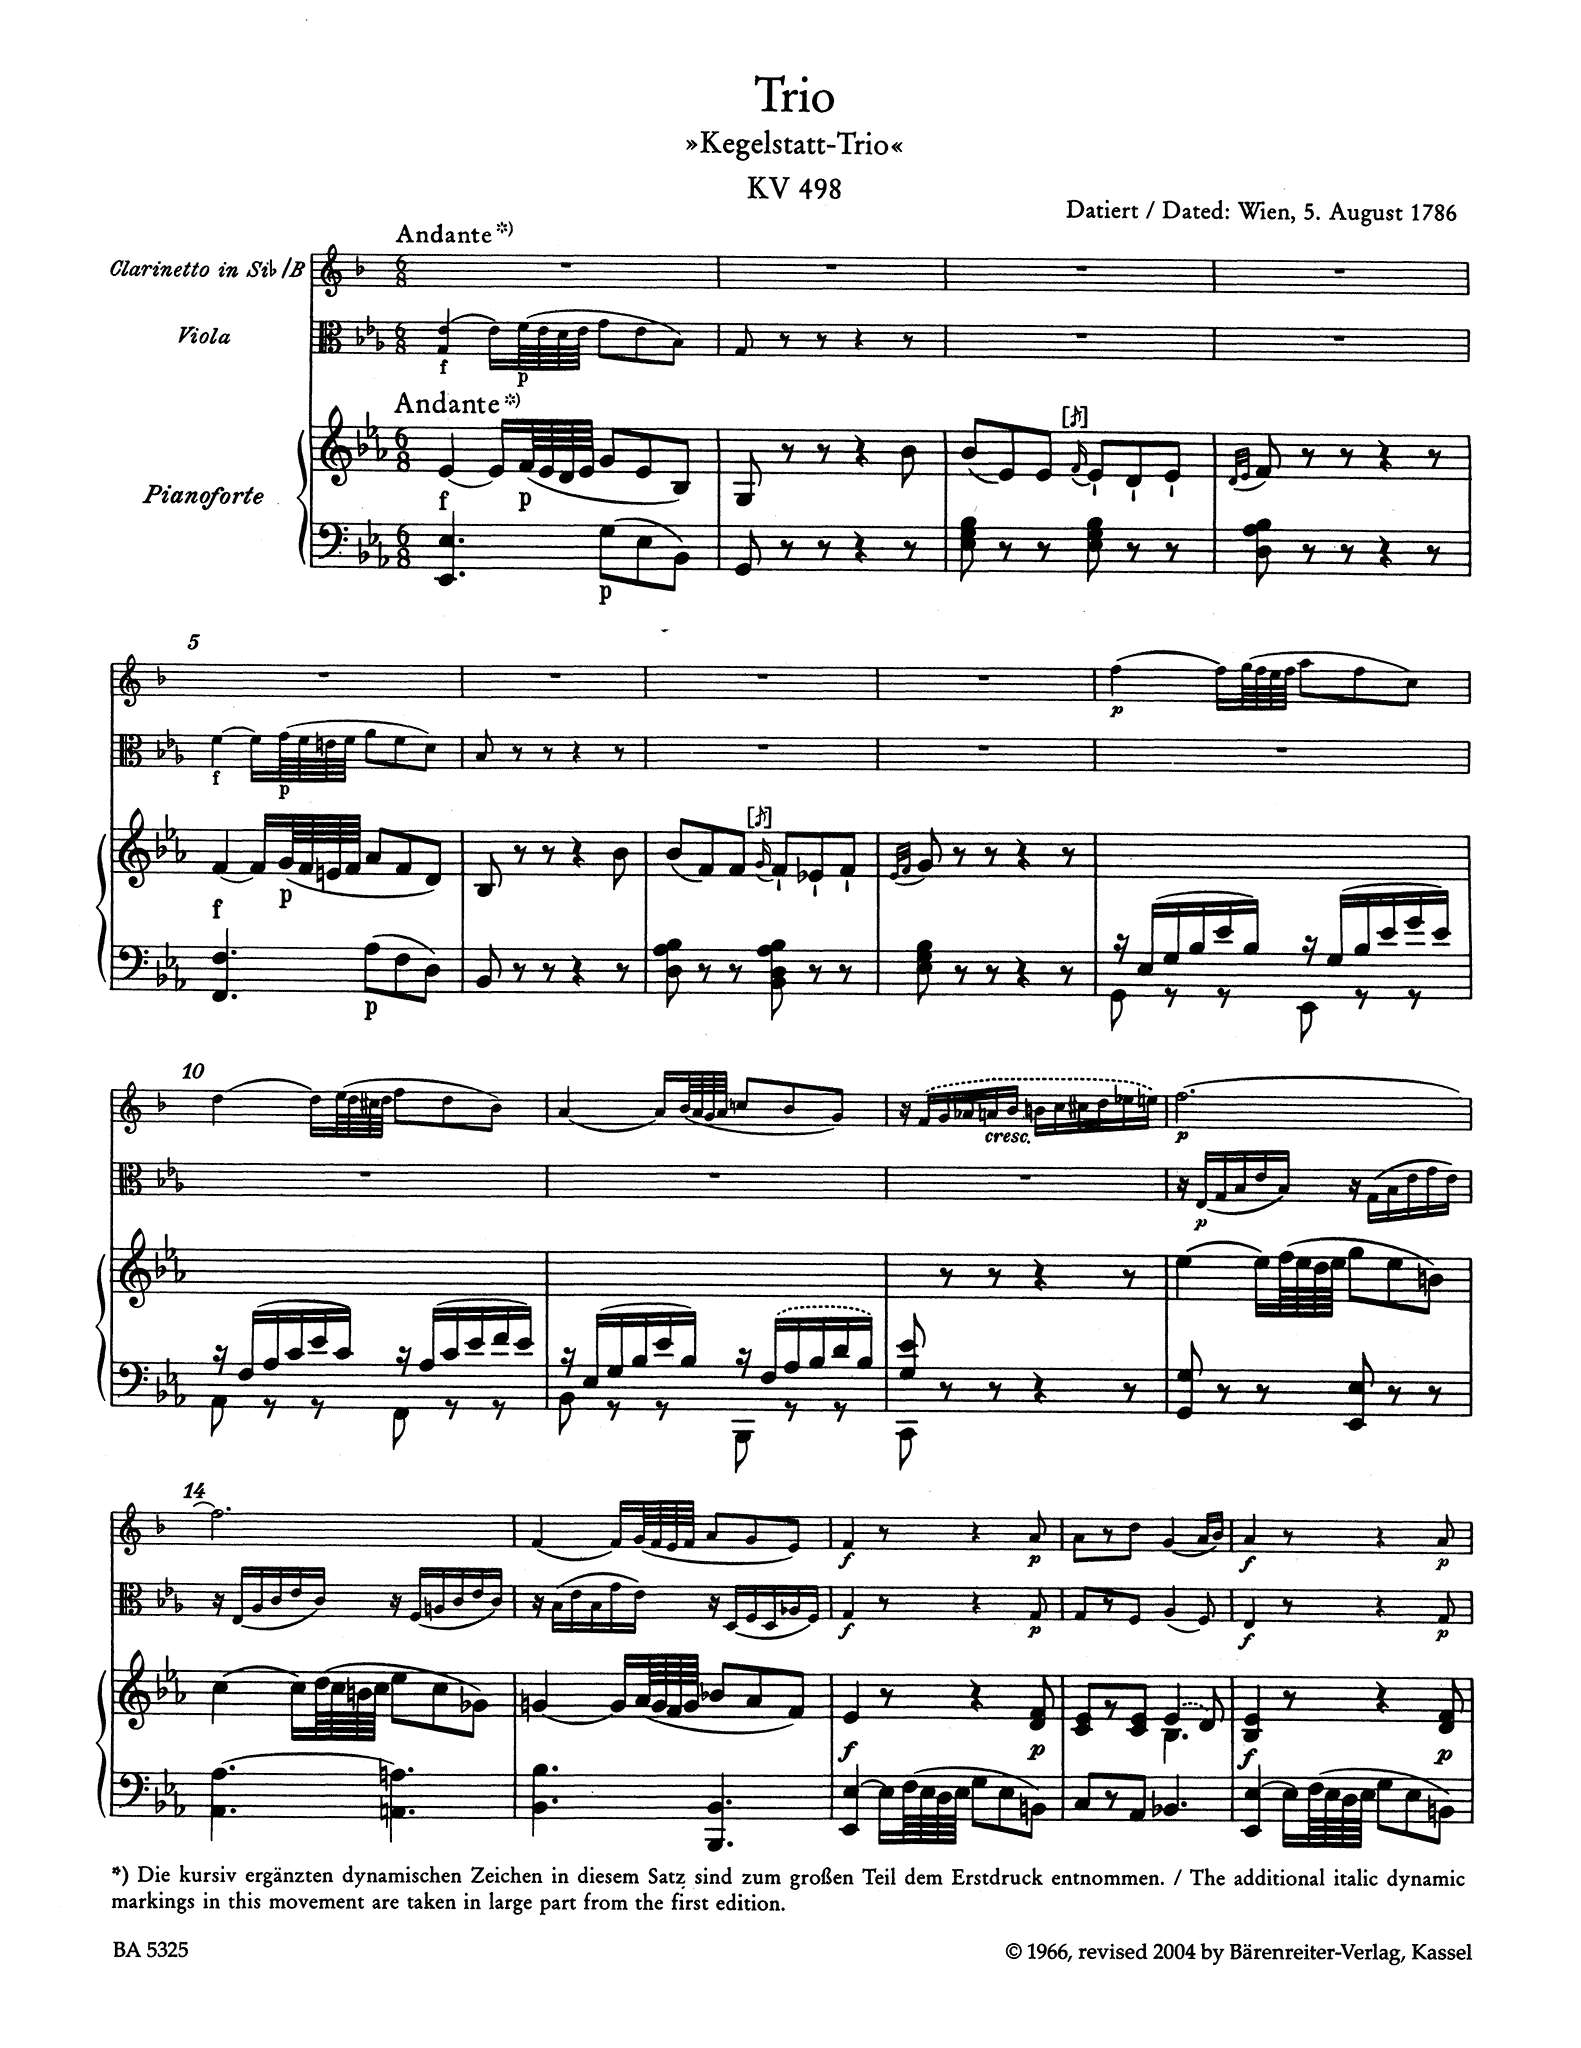 Trio in E-flat Major, K. 498, 'Kegelstatt' - Movement 1